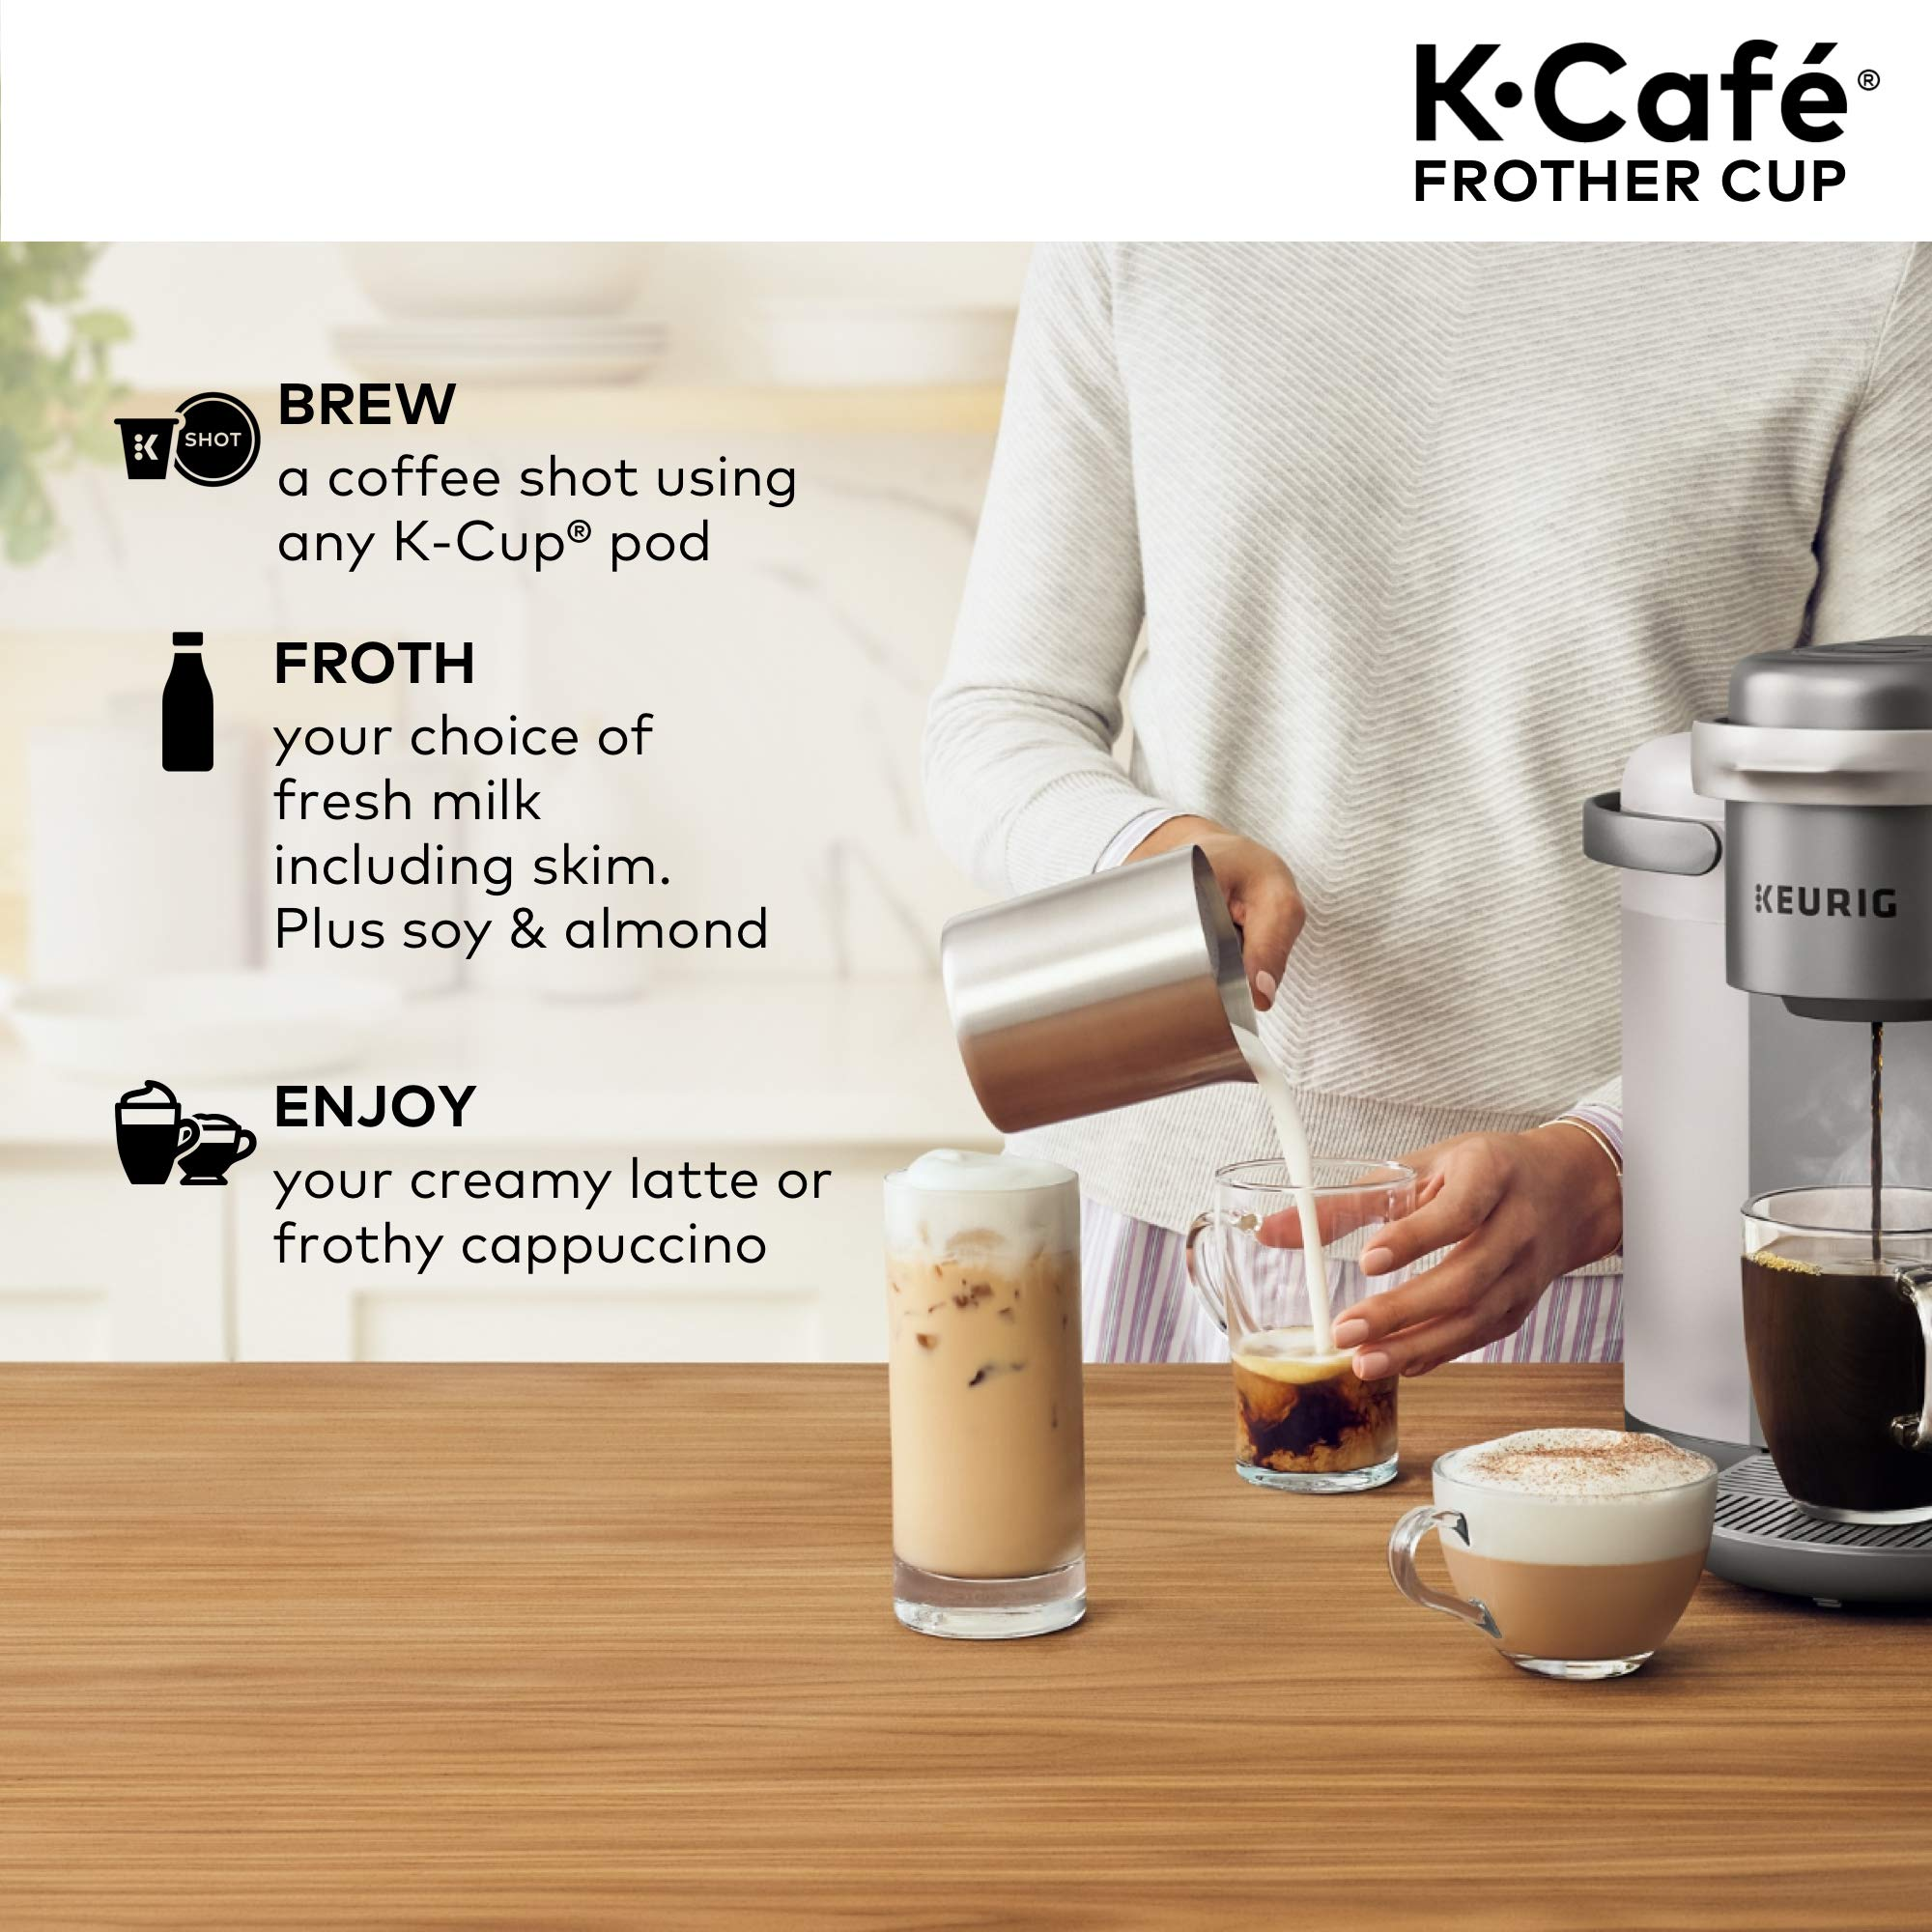 Keurig K-Café Milk Frother, Works with all Dairy and Non-Dairy Milk, Hot and Cold Frothing, Compatible with Keurig K-Café Coffee Makers Only, Nickel by Keurig (Image #7)